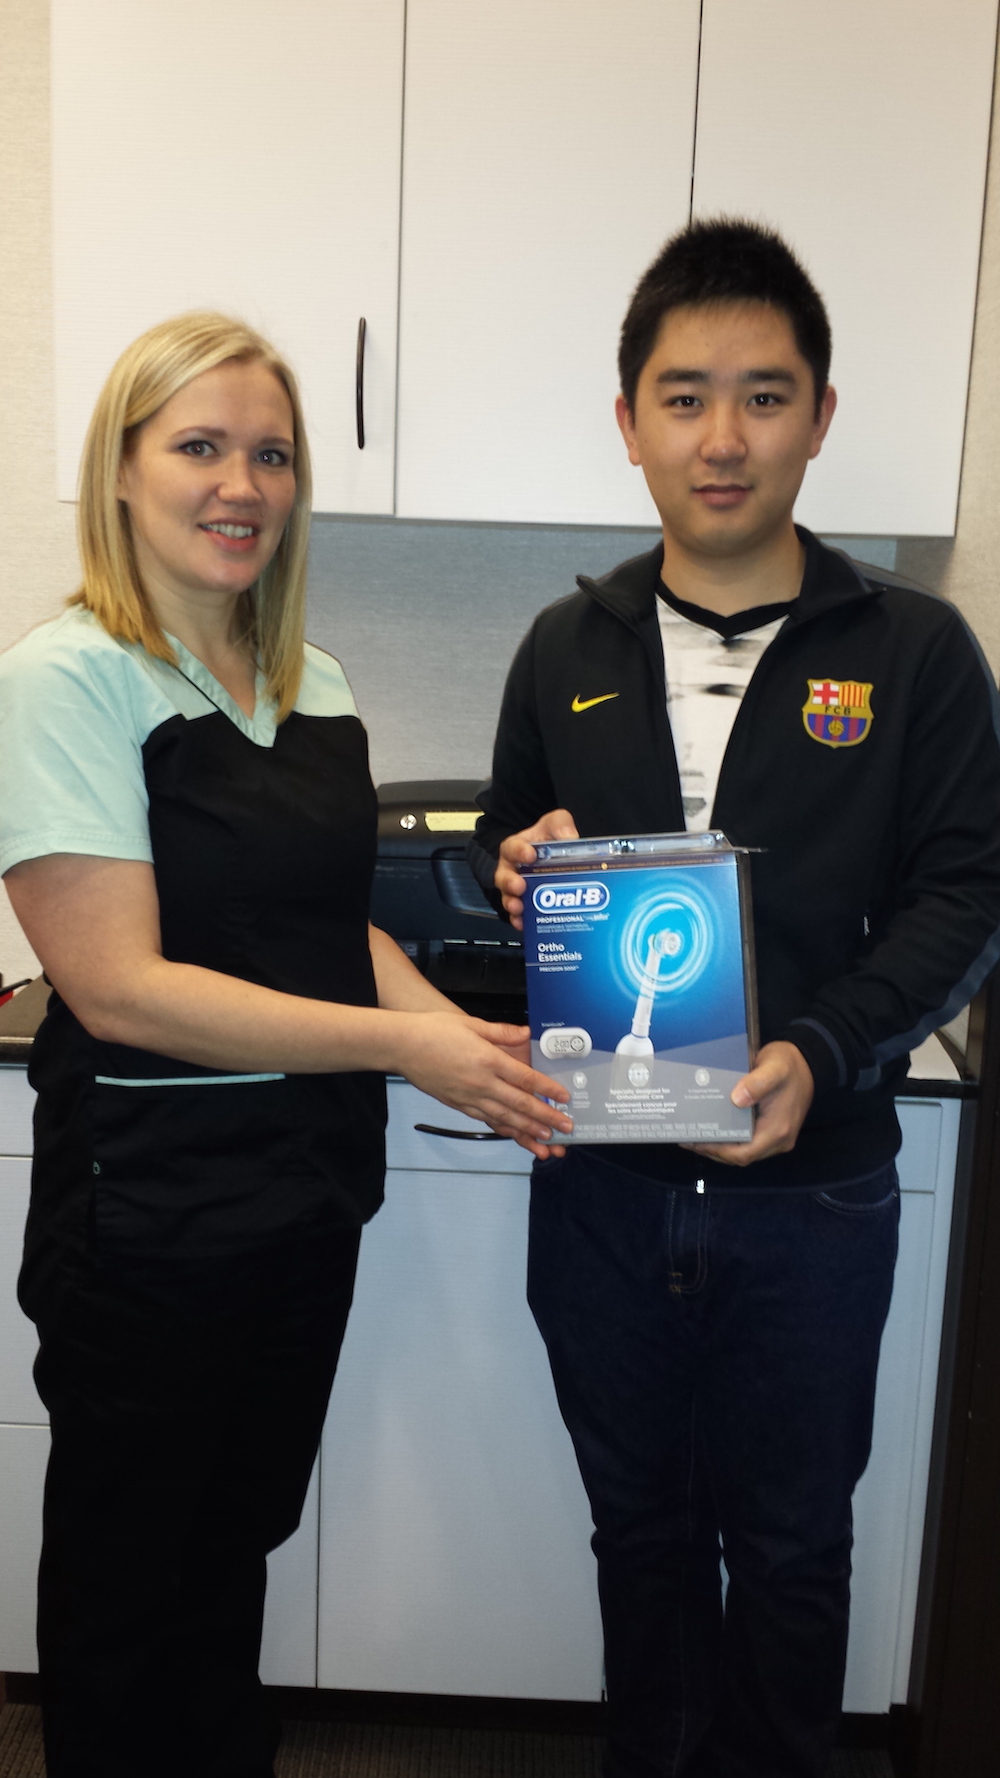 Our October 2014 Winner of an Oral B Toothbrush from your North Vancouver Dentist.